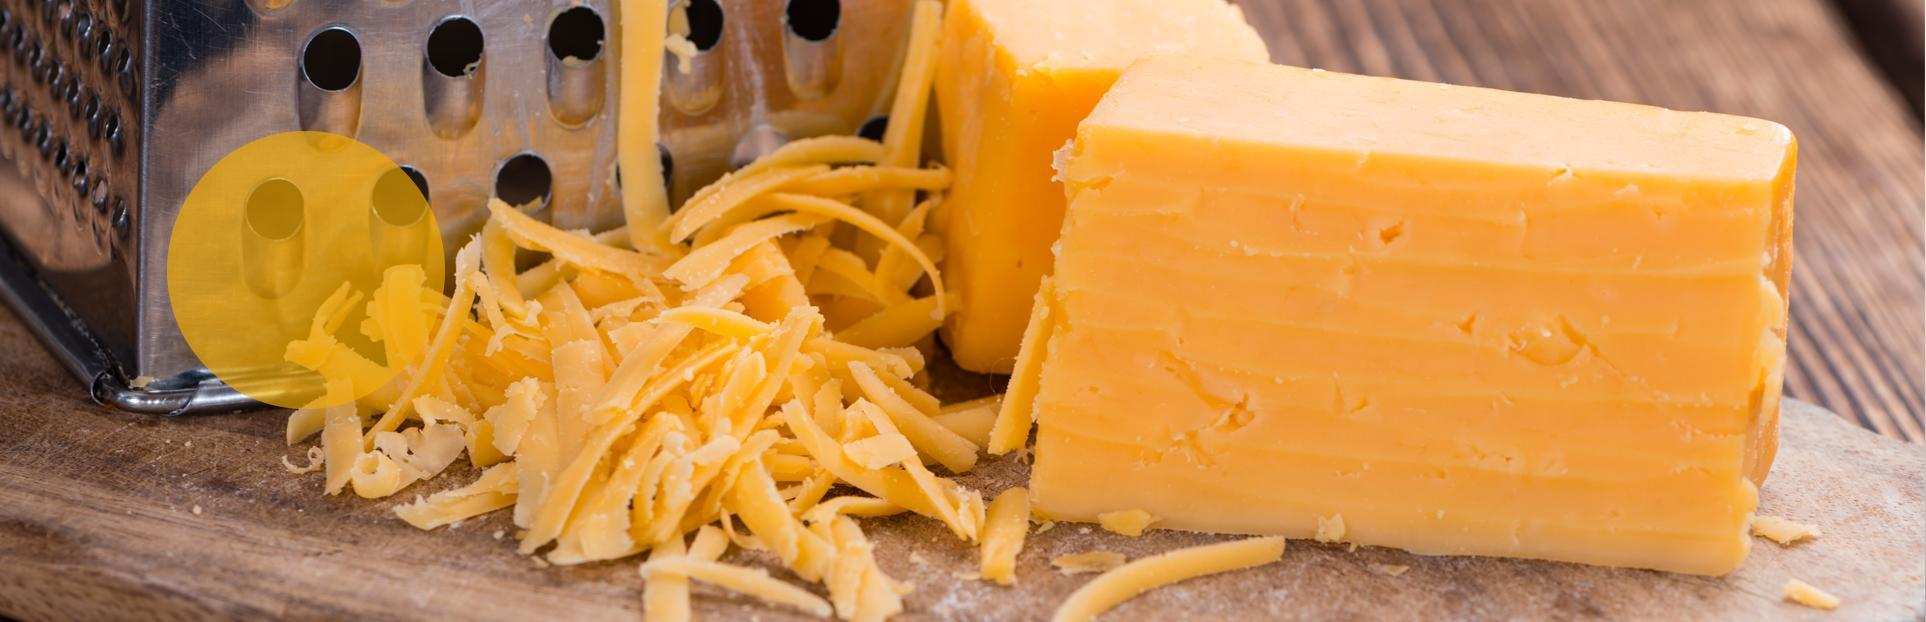 grated cheddar cheese and block of cheese